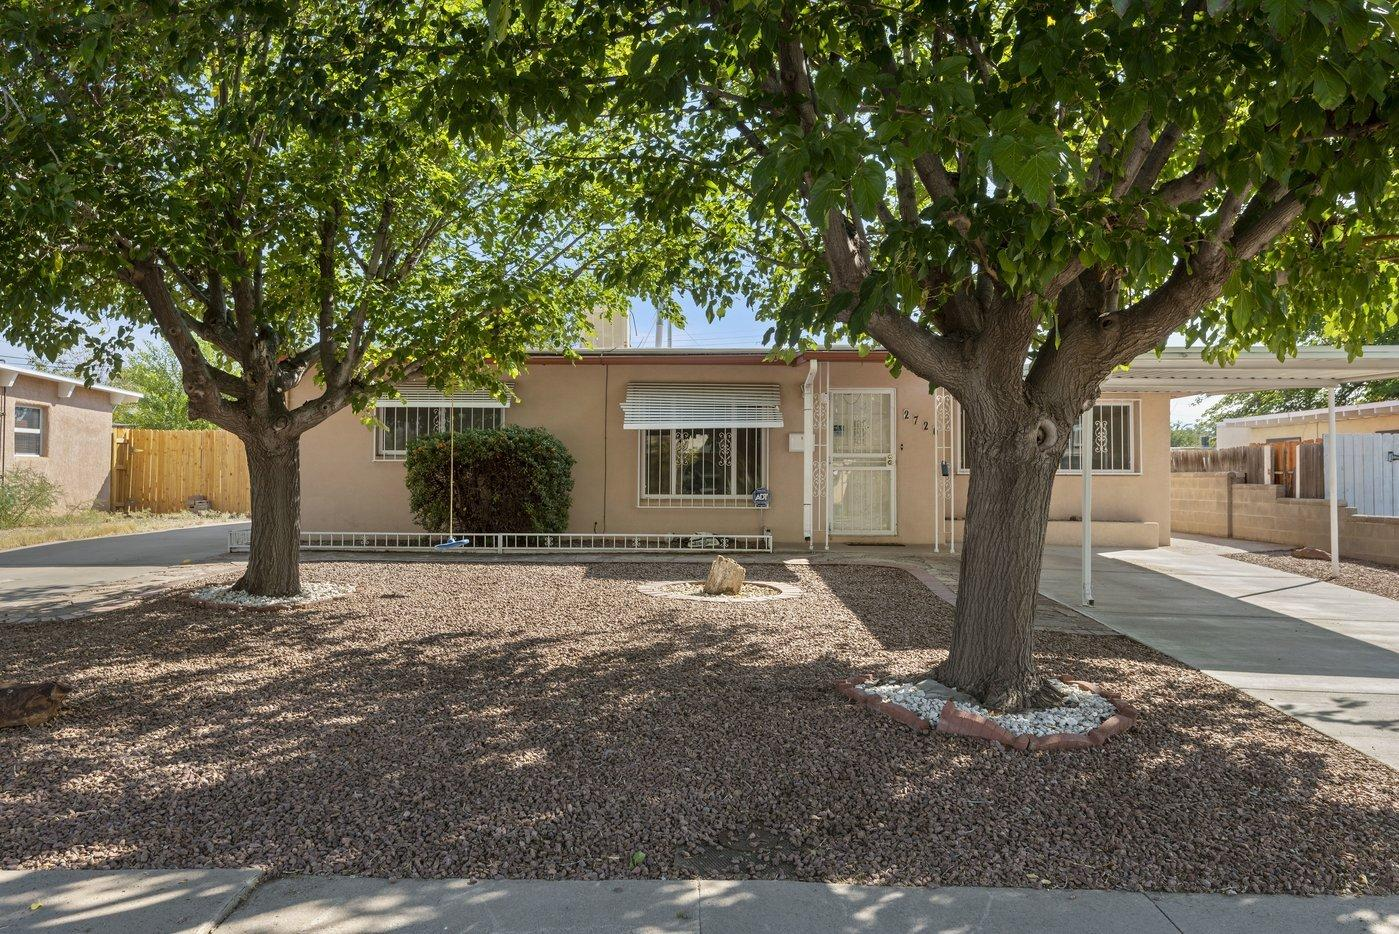 Located in Uptown just minutes from the Coronado Mall, ABQ Uptown and lots of great shopping and restaurants. This 4 bedroom home has 1,862 sqft with 2 living areas. A brand NEW roof and a NEW evaporative cooler installed October 2020. Backyard has covered patio and two large sheds to provide ample storage and workshop space. There's even parking and hookups for your RV.